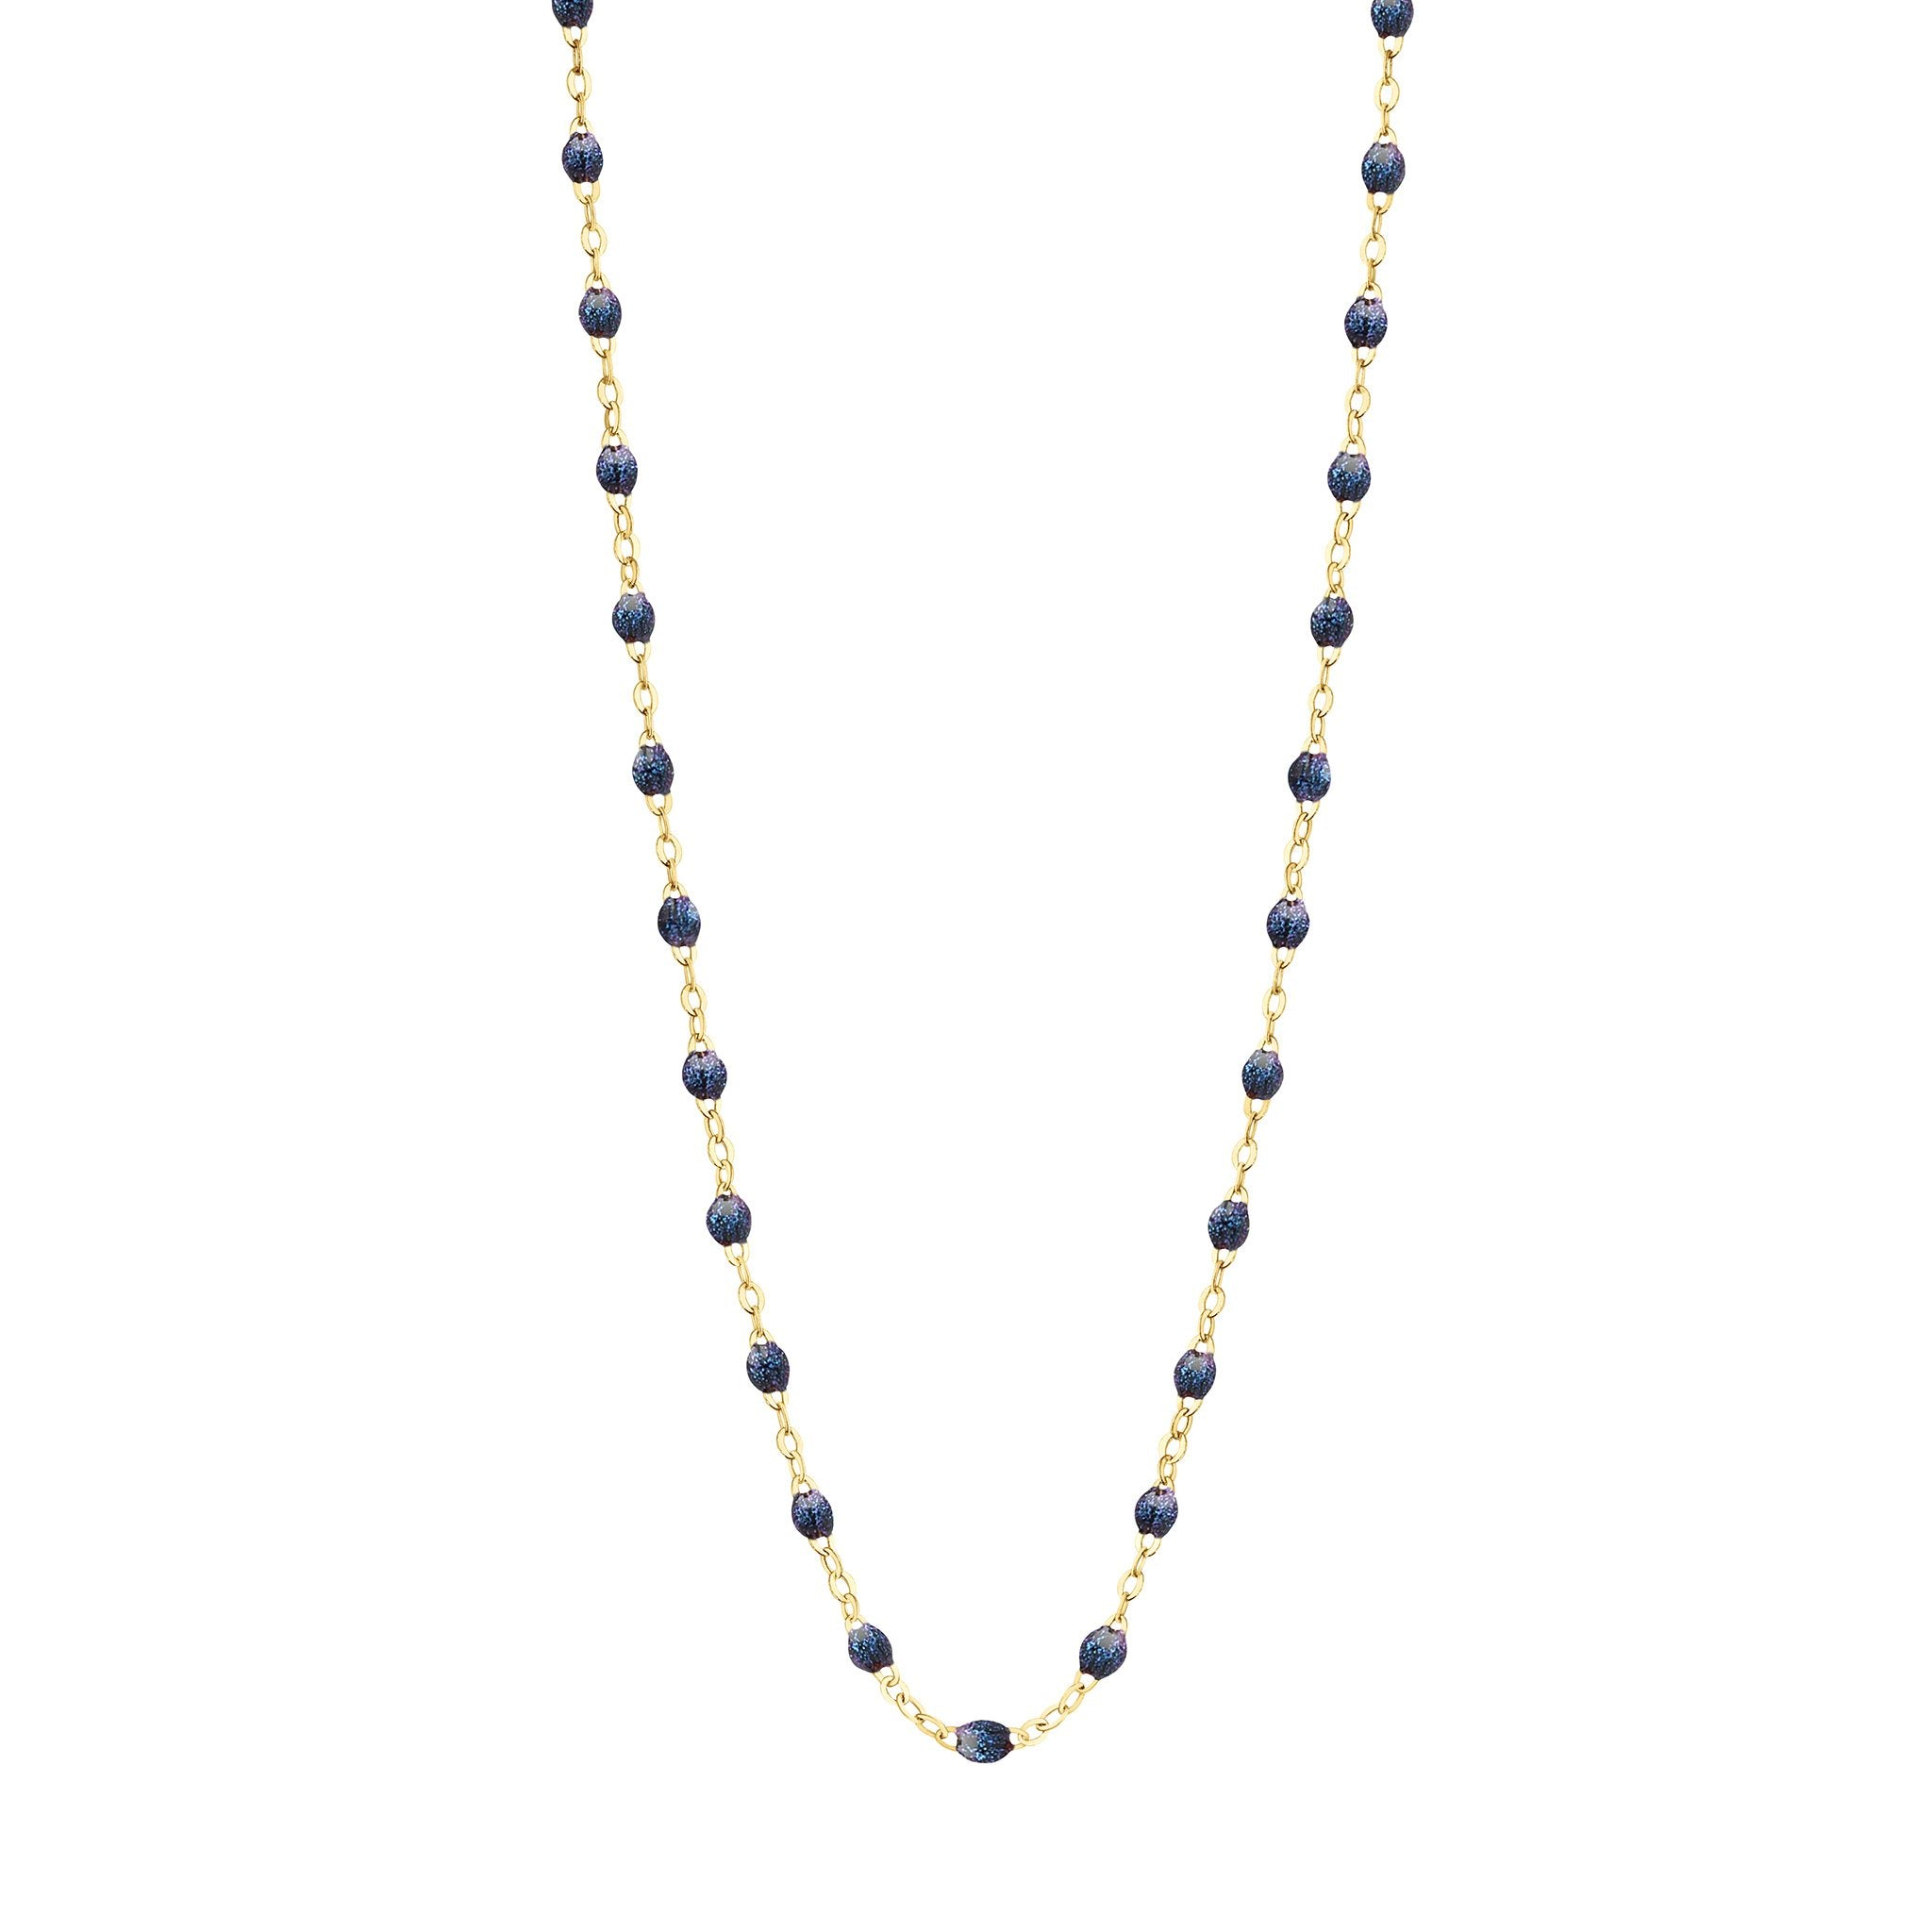 Gigi Clozeau - Classic Gigi Midnight necklace, yellow gold, 16.5